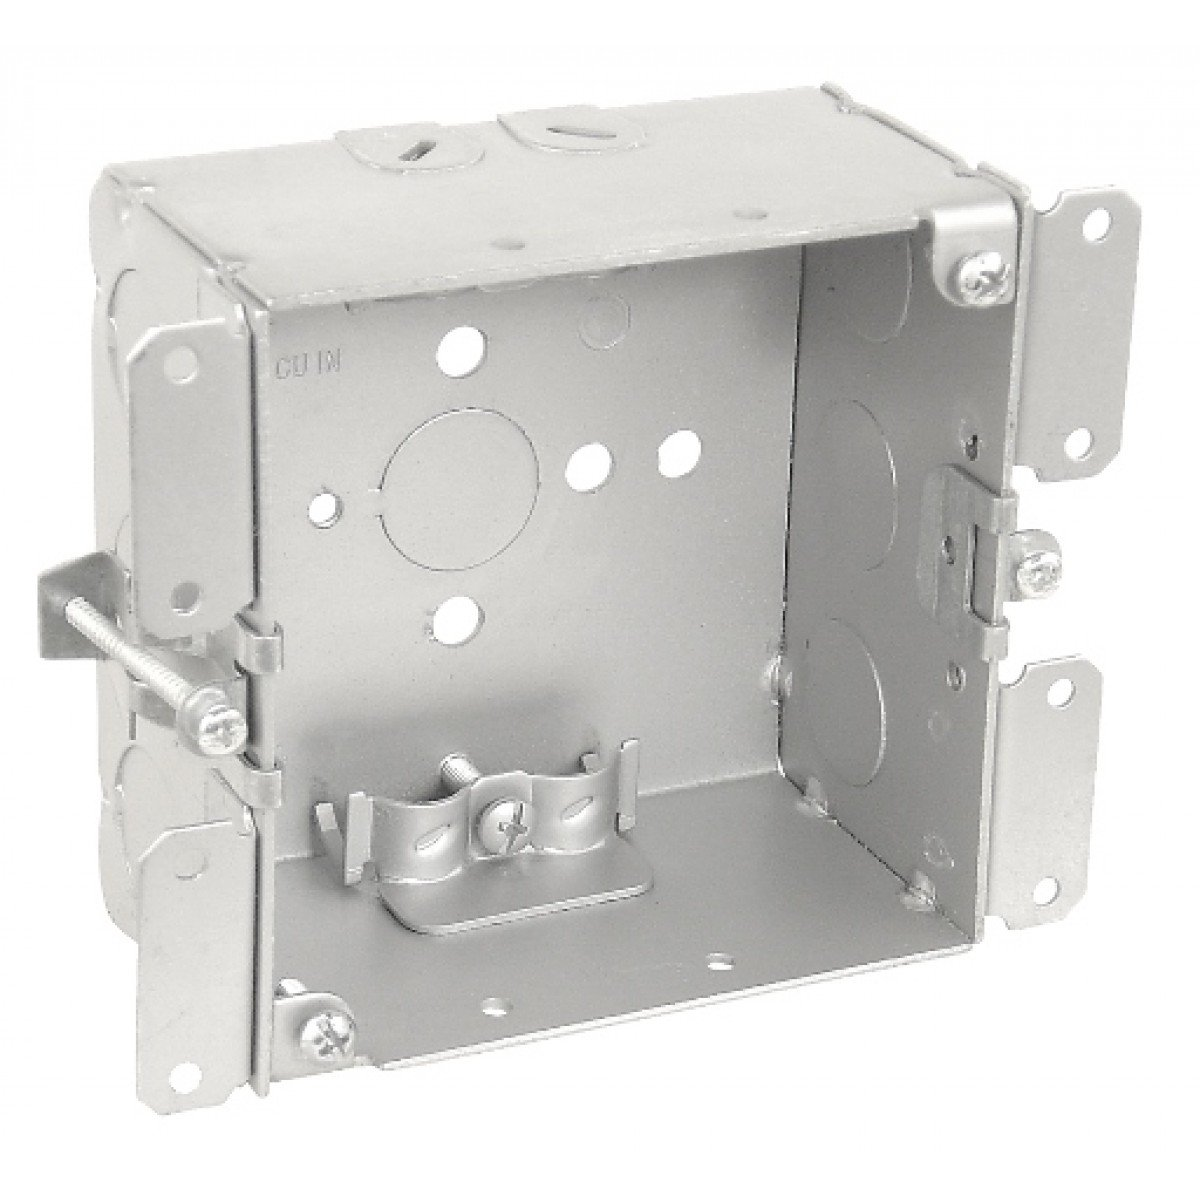 1 Pc, 4'' Square Cut In Old Work Junction Box, 2-1/8 In. Deep, (6) 1/2 In. Side Knockouts & (4) Nm Clamps; (1) 1/2 In. Bottom Knockout, .0625 Galvanized Steel